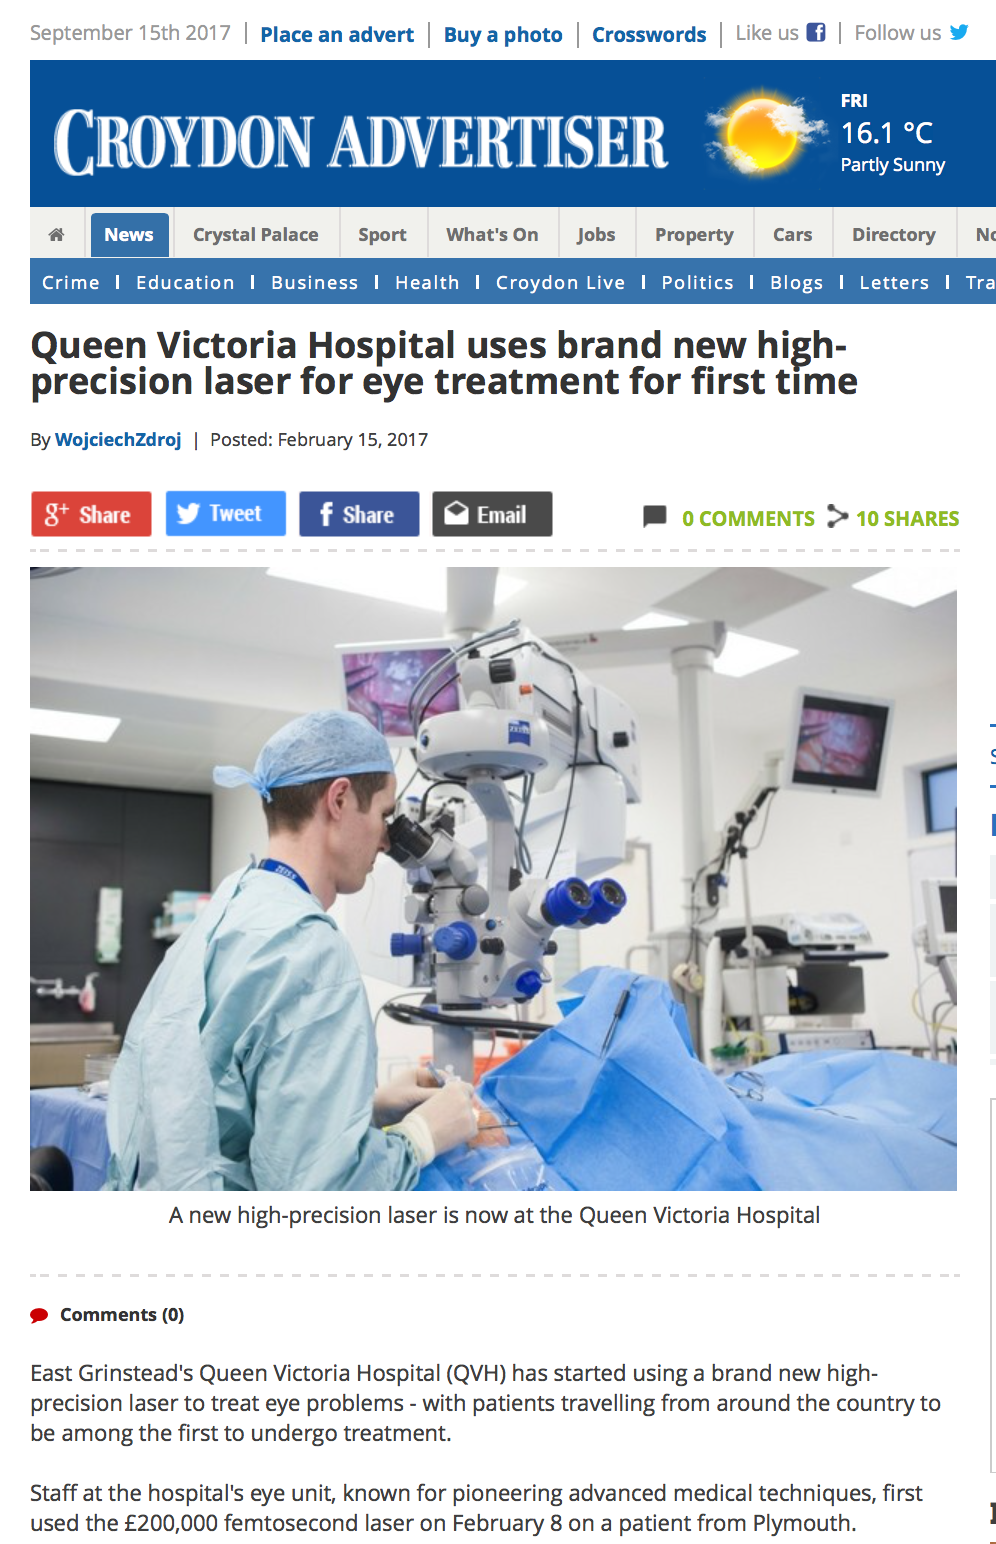 Damian Lake featured with the new Femtosecond laser at The Queen Victoria Hospital,East Grinstead,UK.